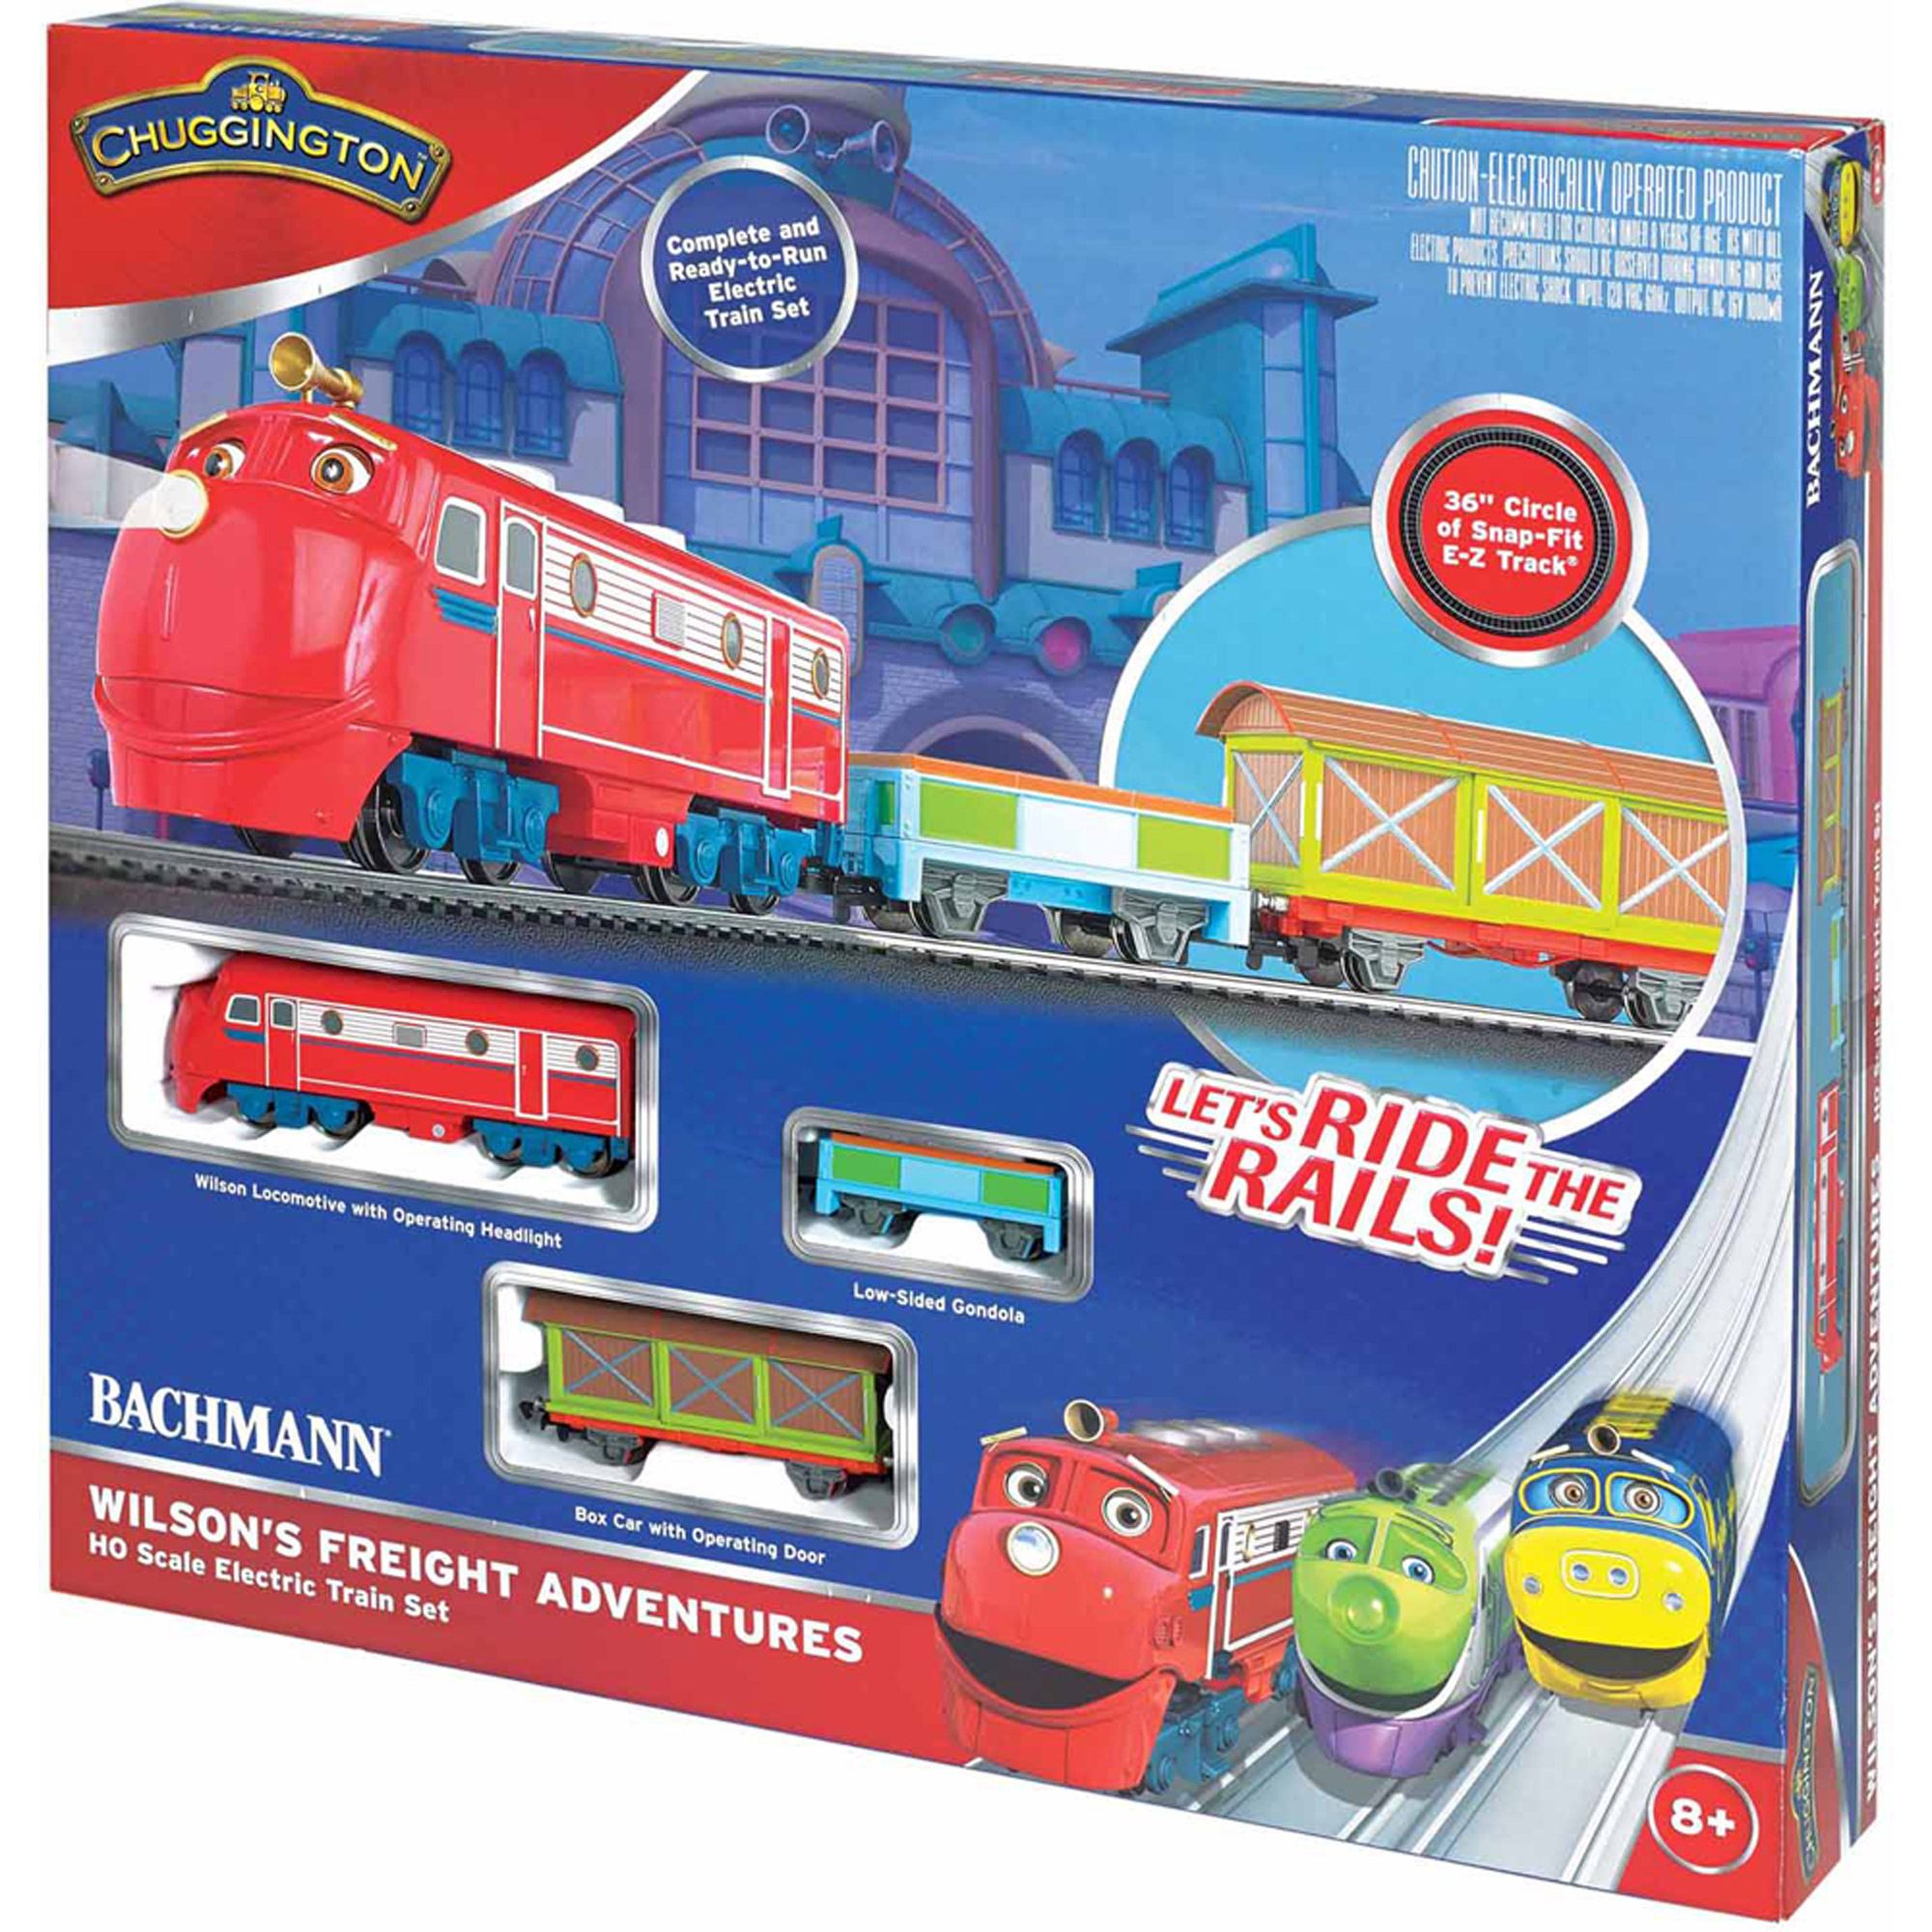 Bachmann Trains Chuggington Wilson's Freight Adventures, HO Scale Ready-to-Run Electric... by Bachmann Trains